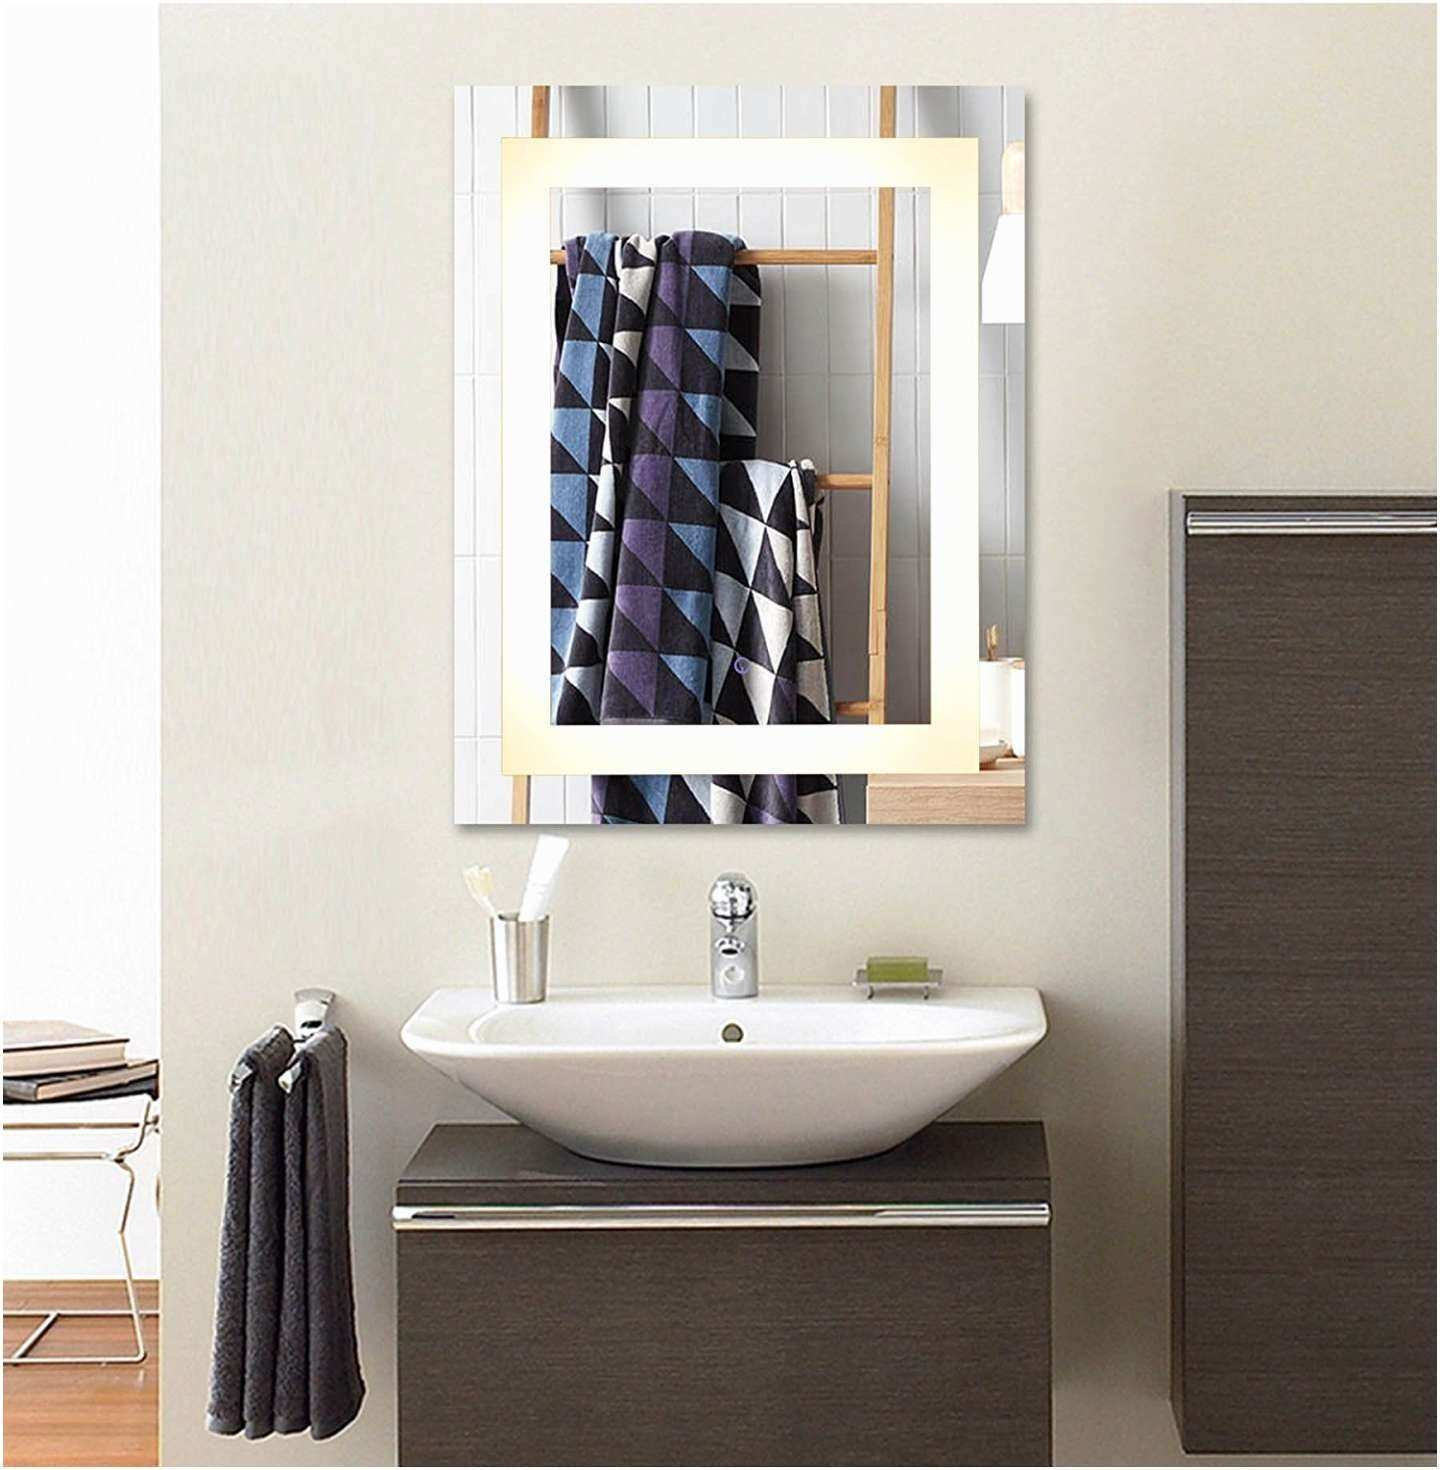 Home Design Bathroom Mirror Shelf Elegant 36 X 28 In Horizontal